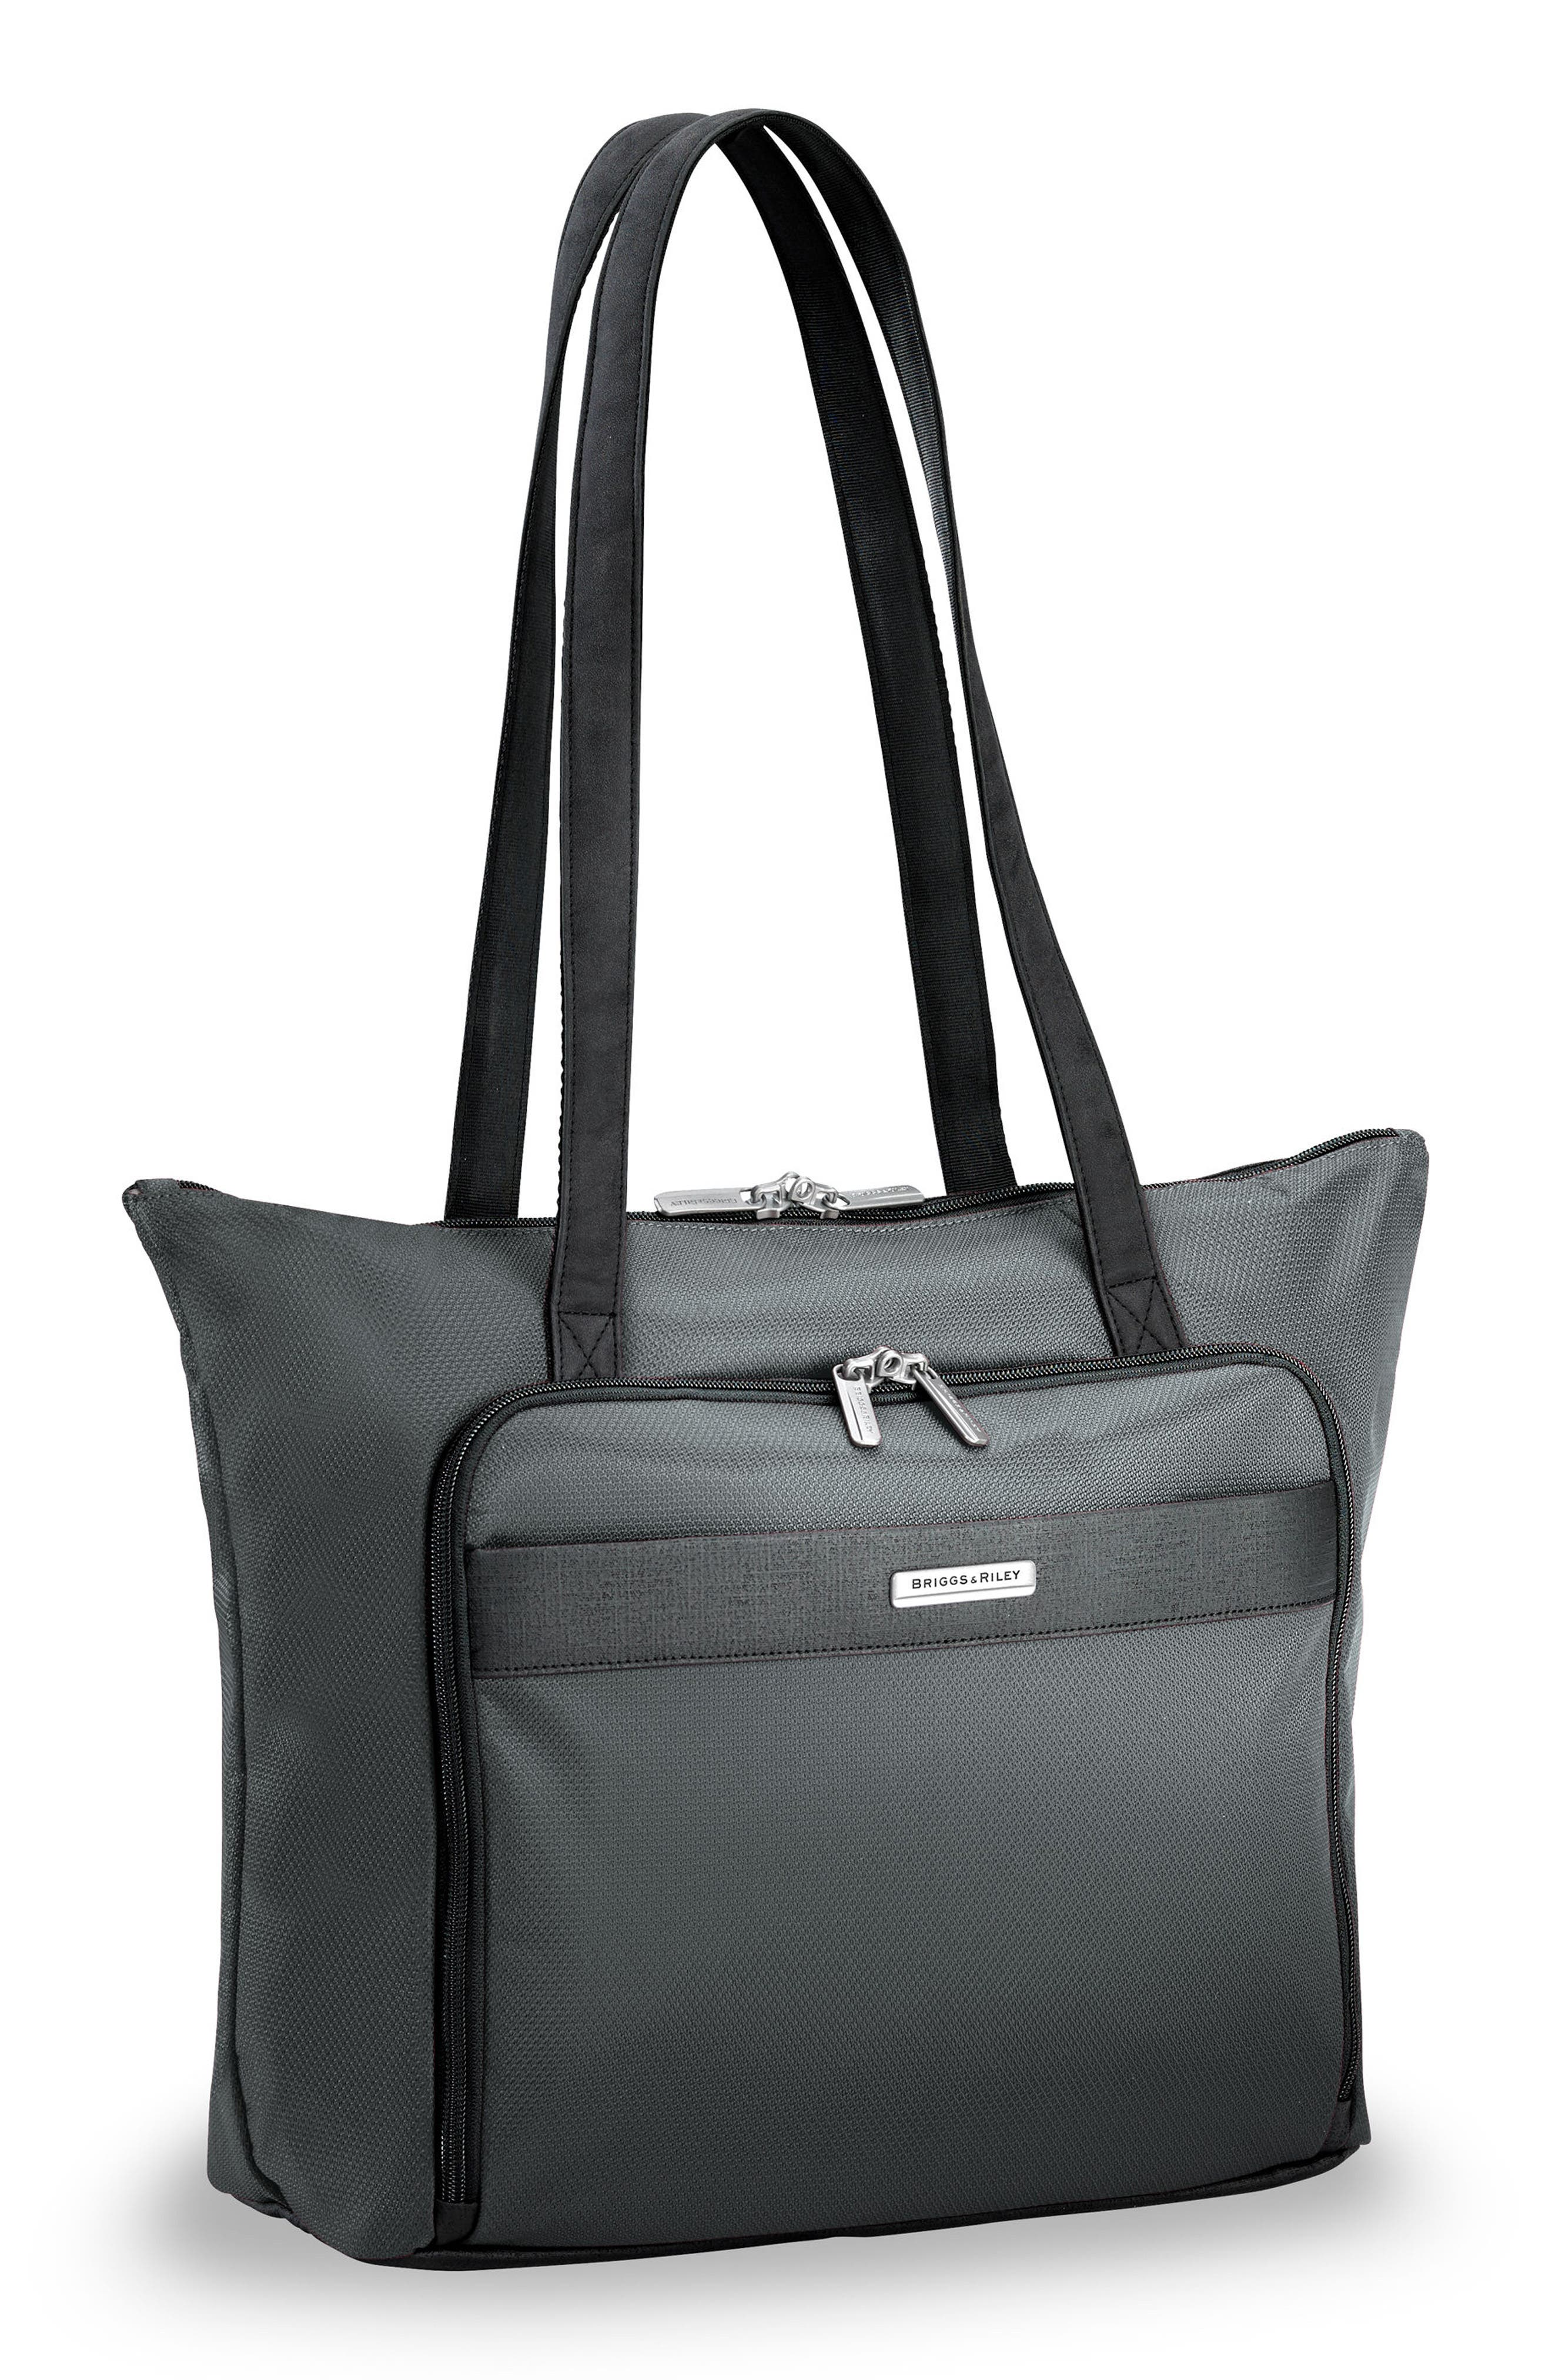 BRIGGS & RILEY,                             Transcend 400 Tote Bag,                             Alternate thumbnail 4, color,                             SLATE GREY